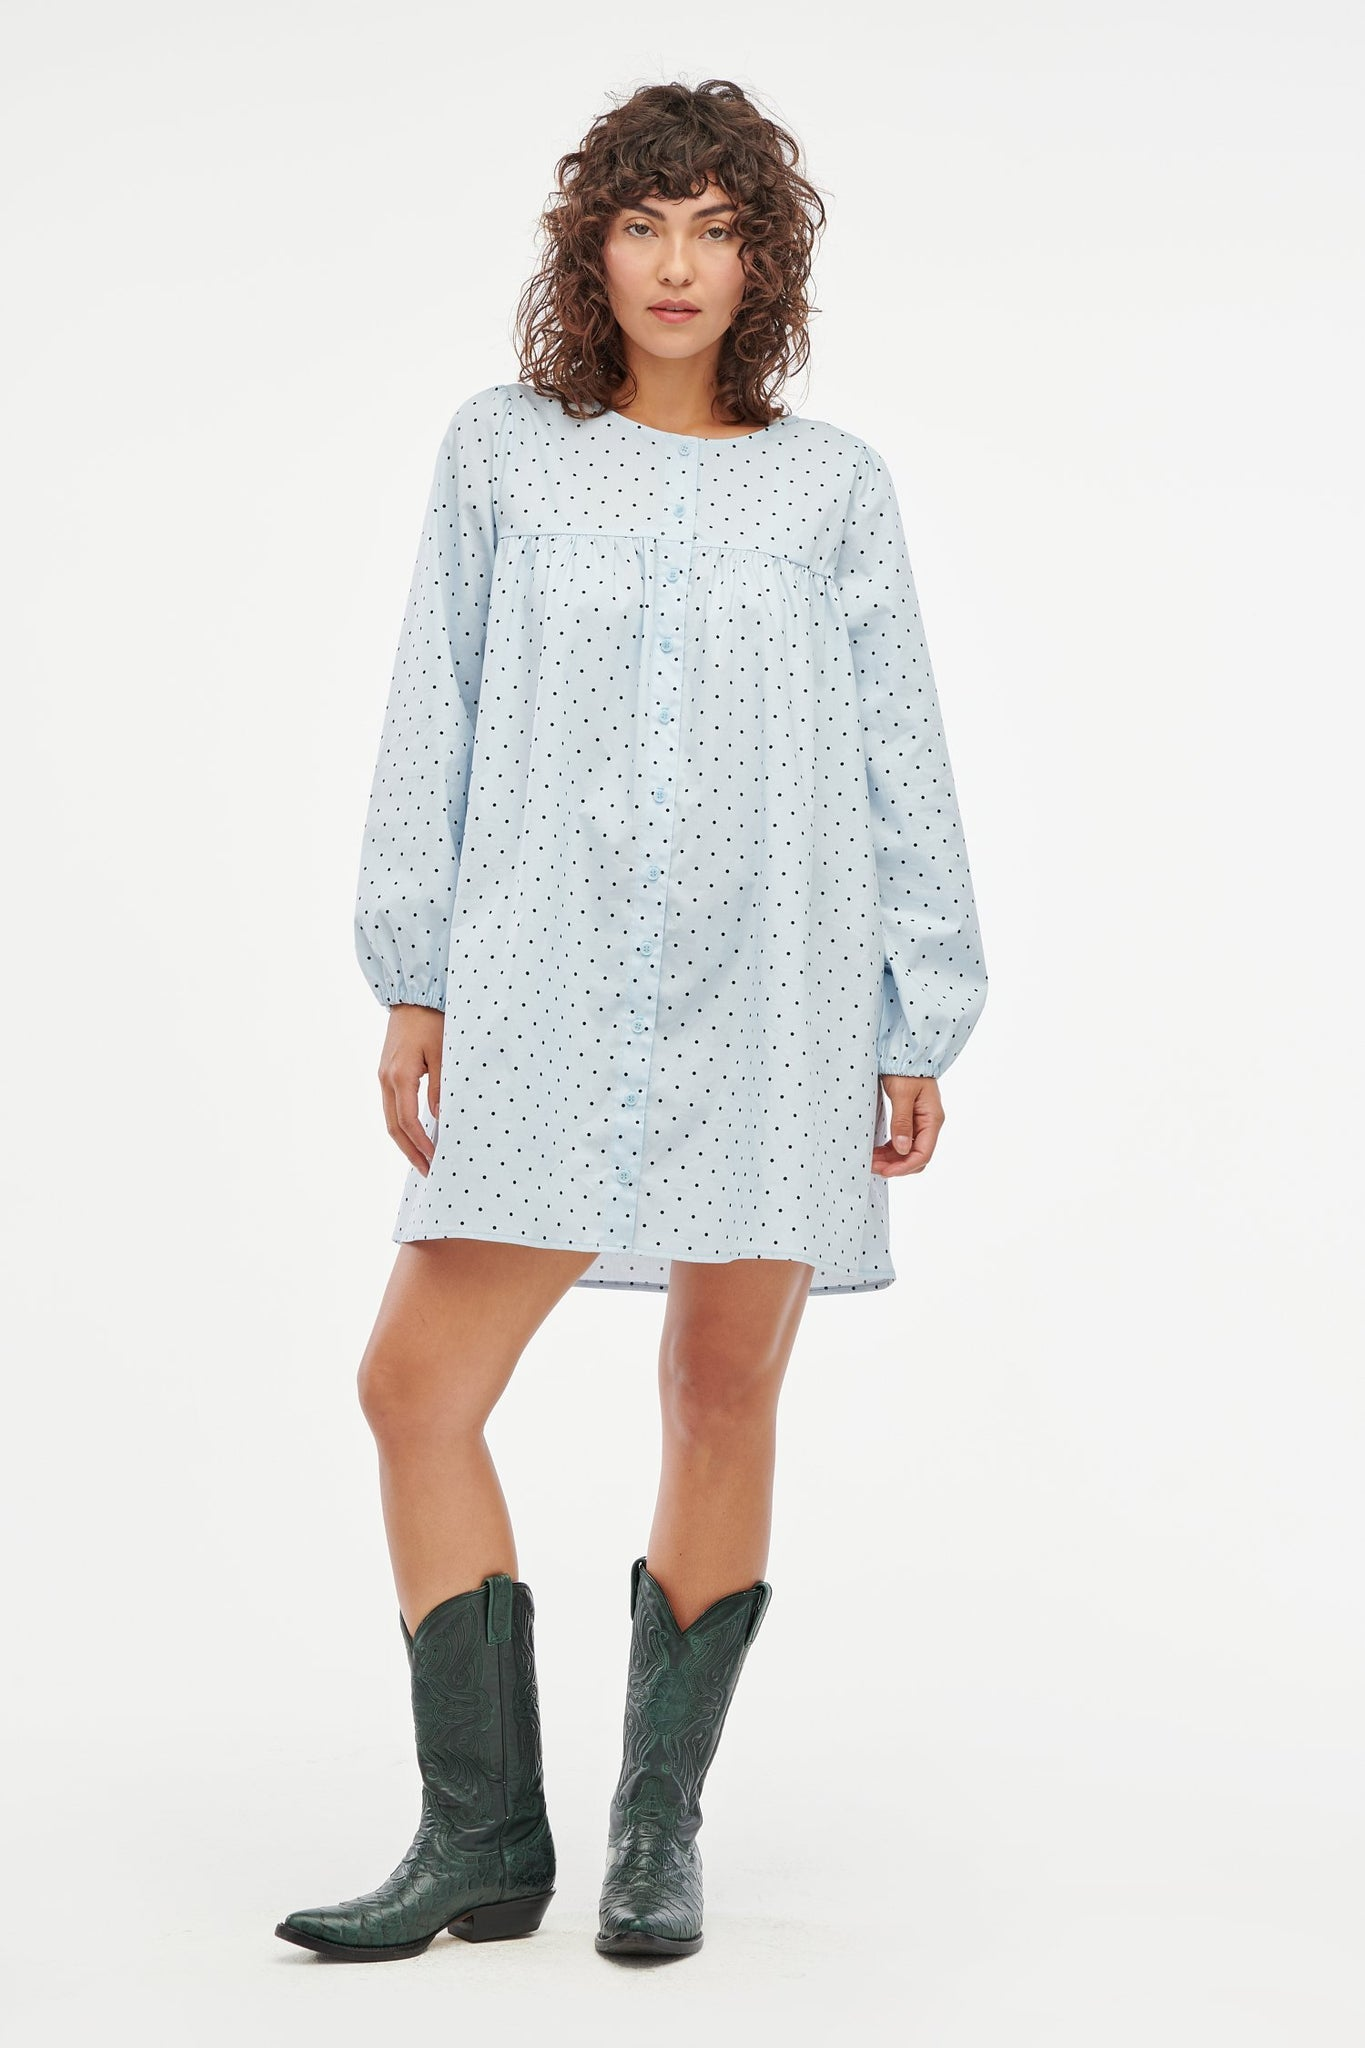 Avery Dress - Baby Blue Dot